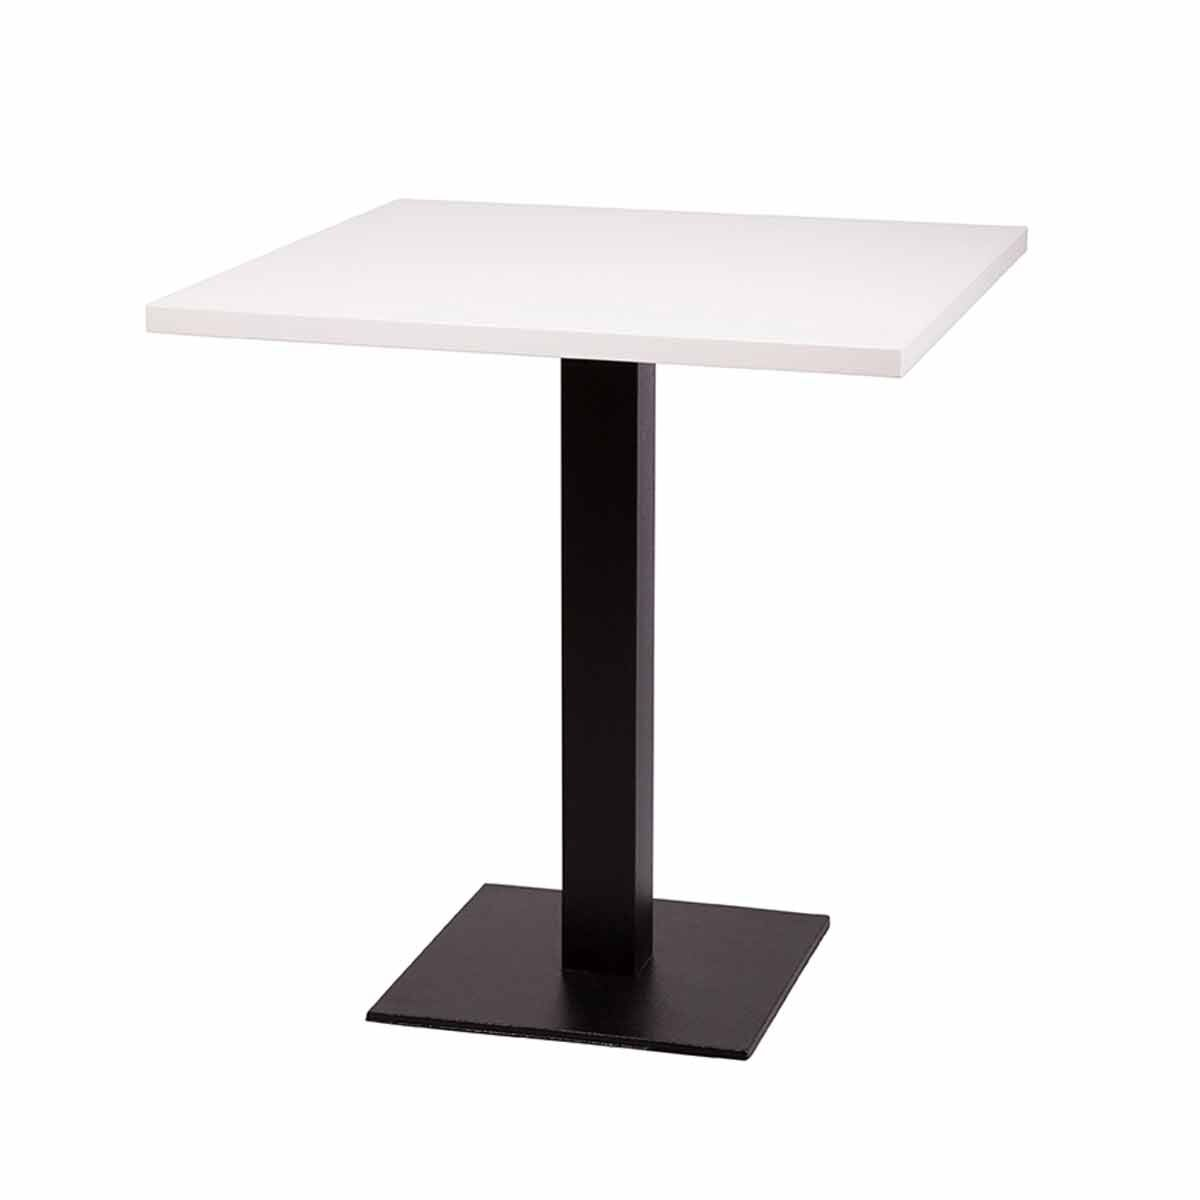 Tabilo Forza Square Dining Table 700mm